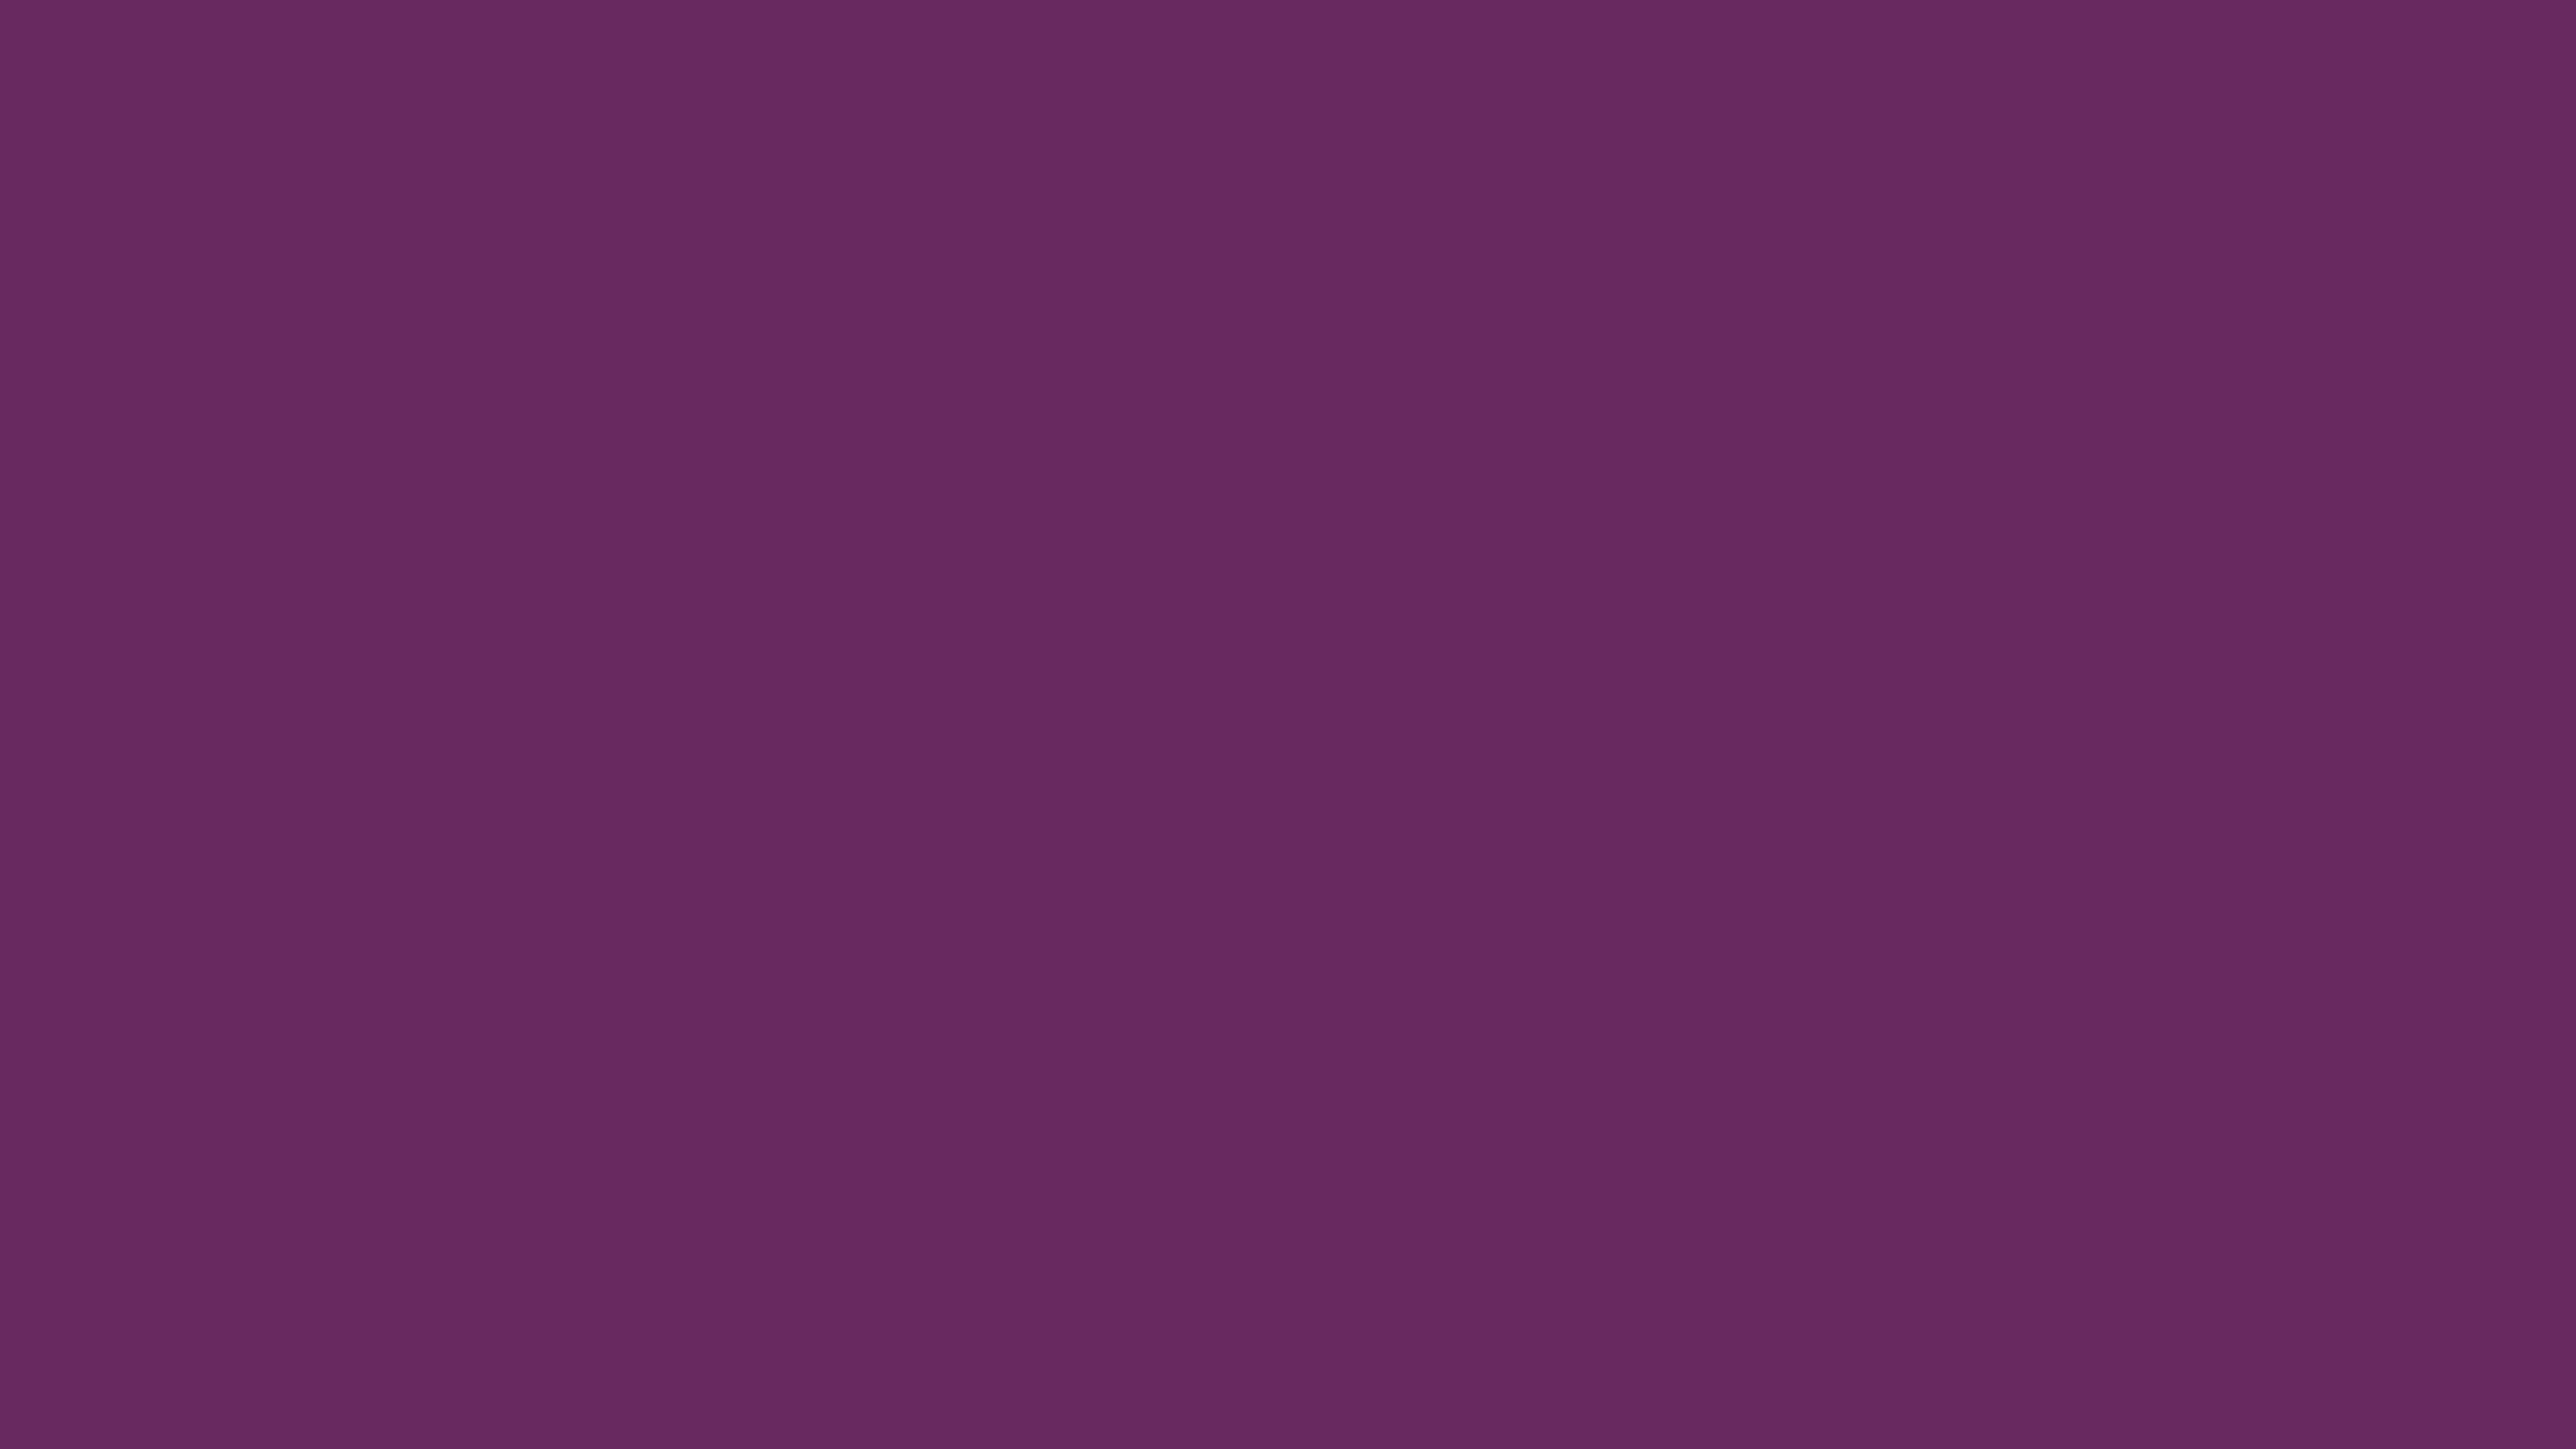 5120x2880 Palatinate Purple Solid Color Background